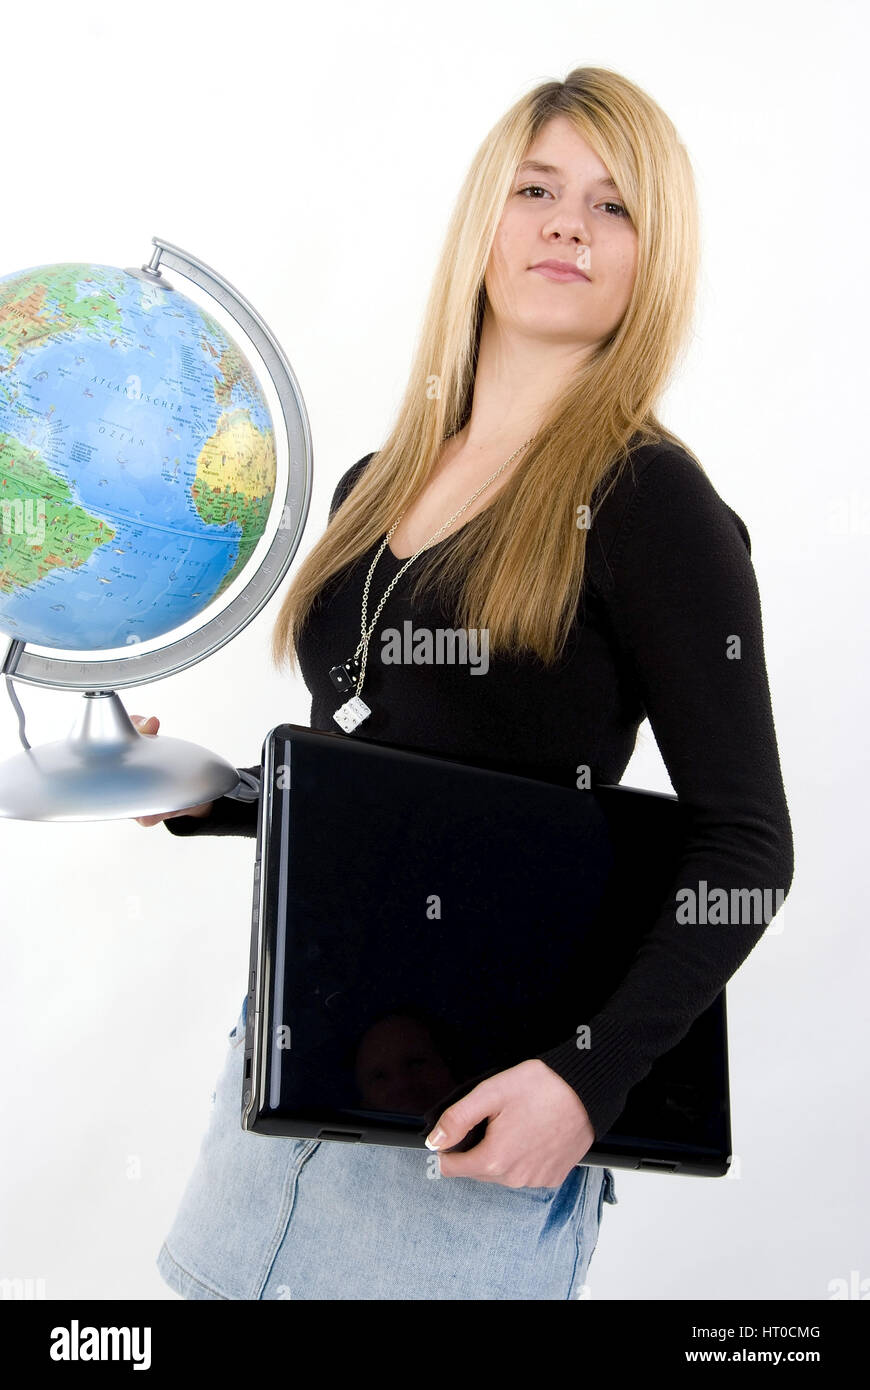 Sch¸lerin mit Globus und Laptop - school girl with globe and laptop - Stock Image